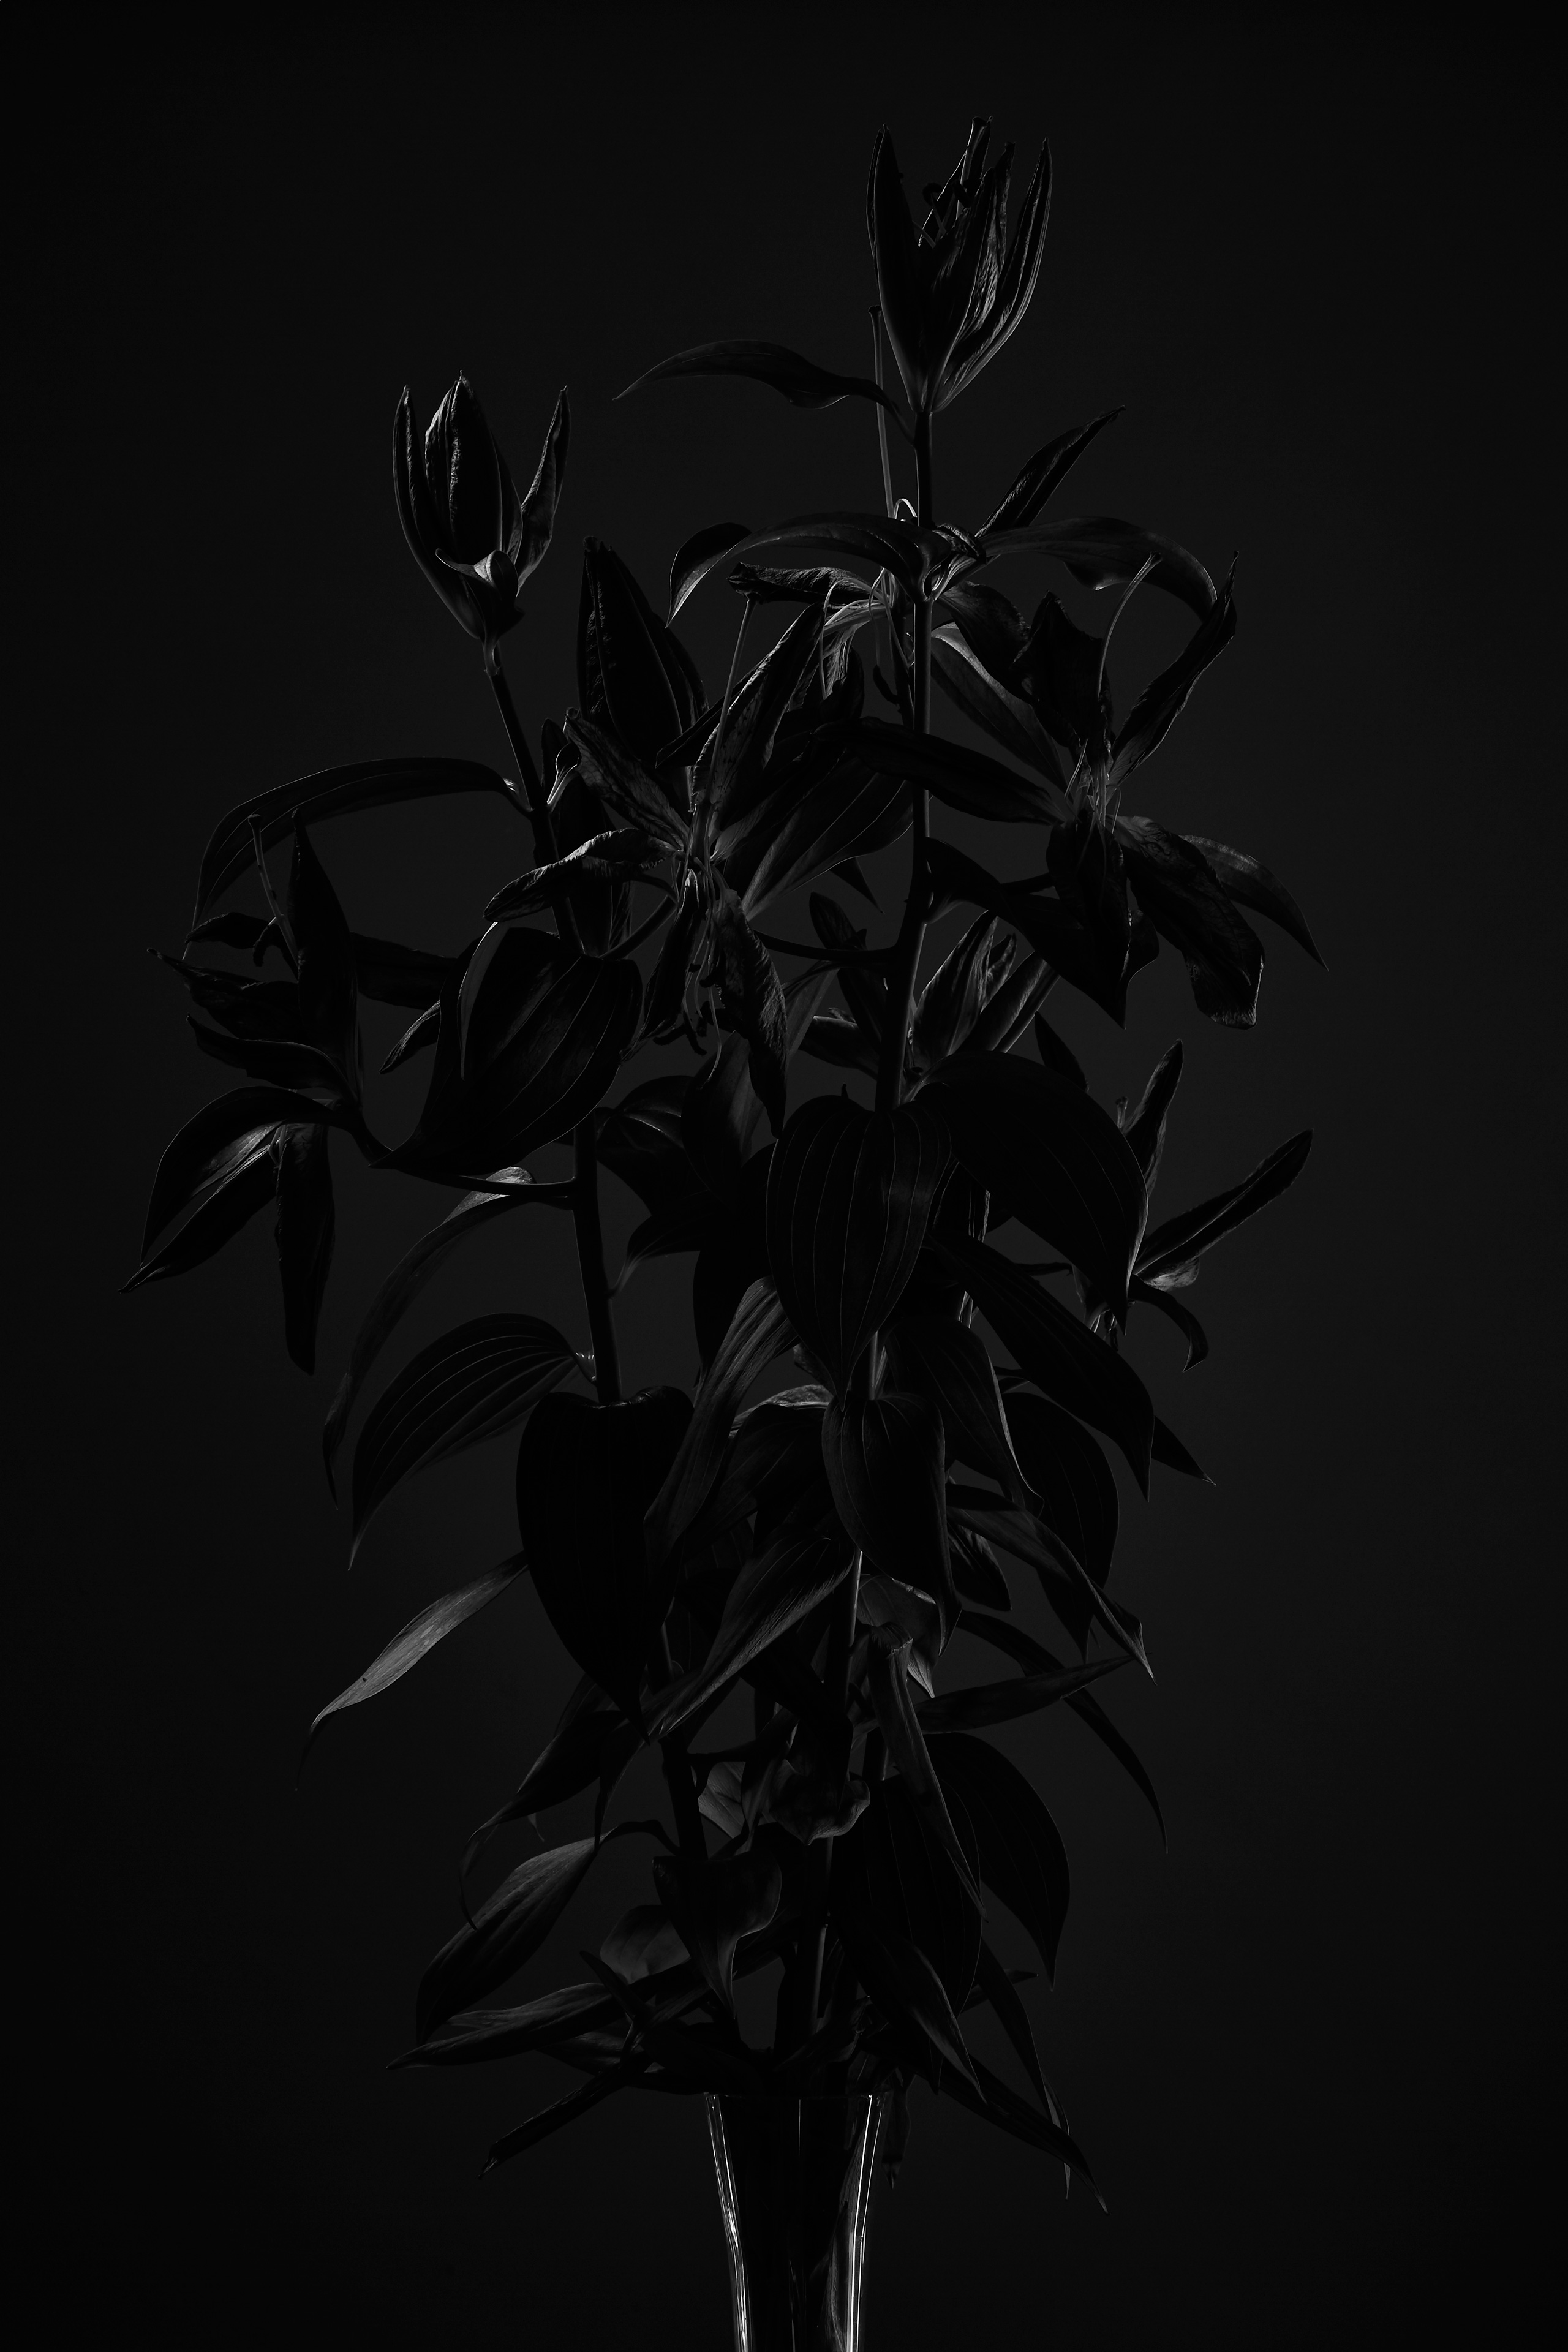 old lily flowers in black and white